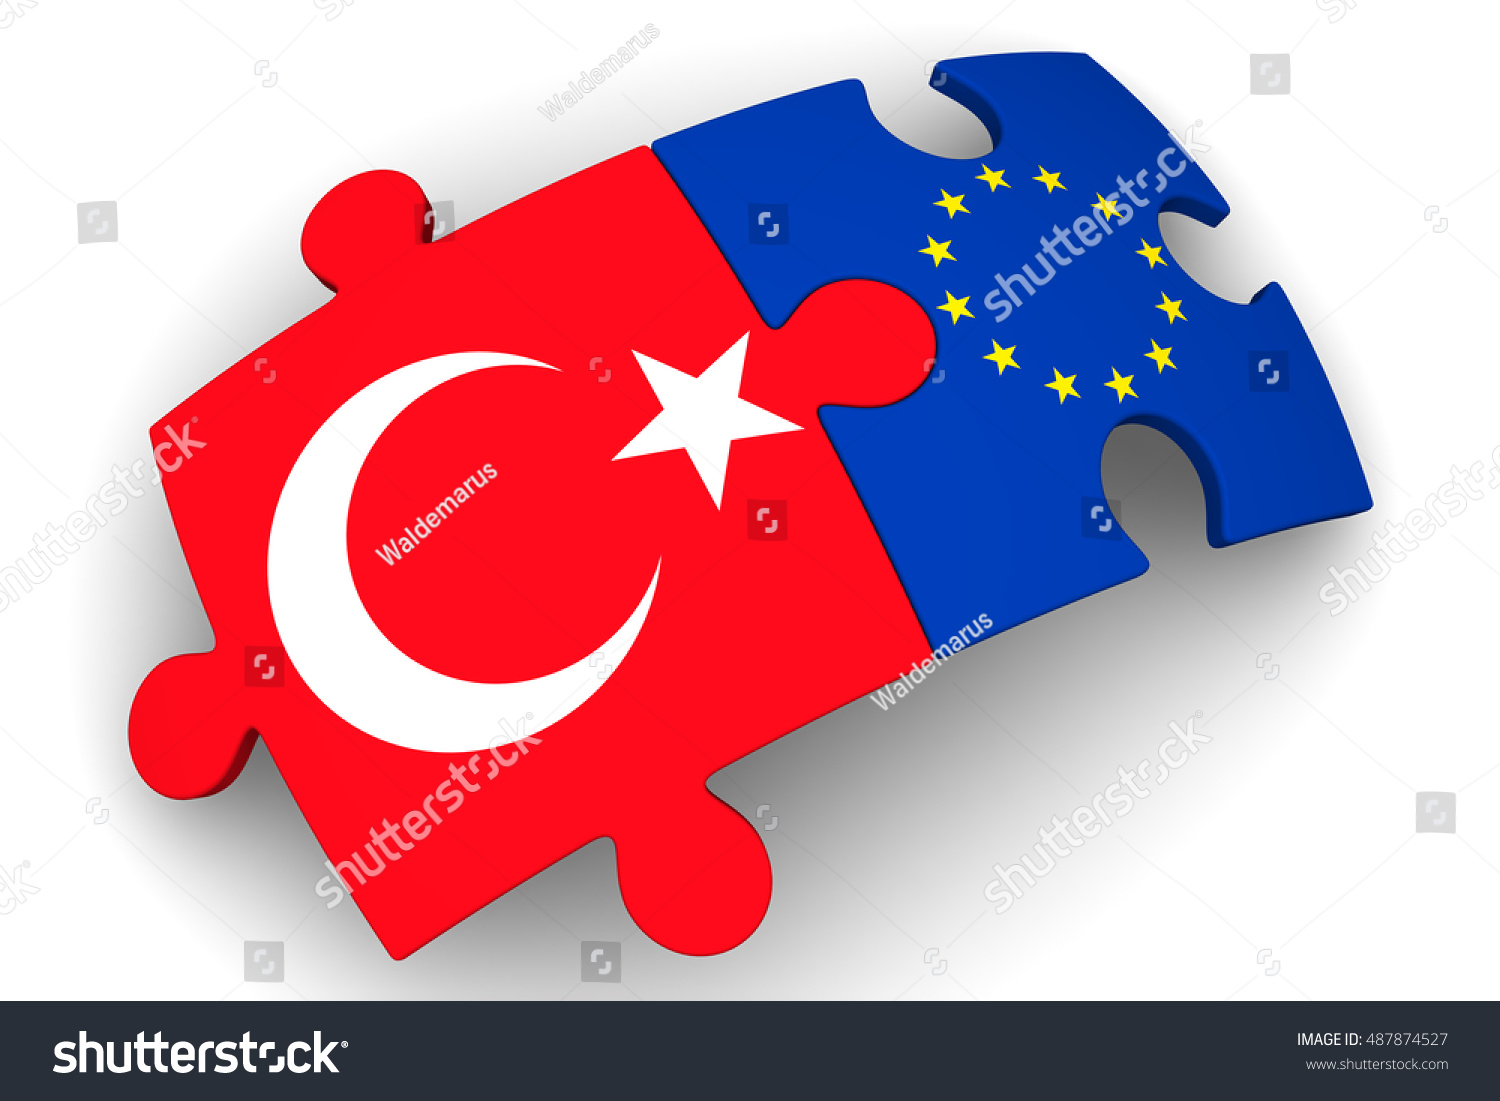 Uncategorized Turkey Puzzles cooperation between european union turkey puzzles stock the and with flags of union